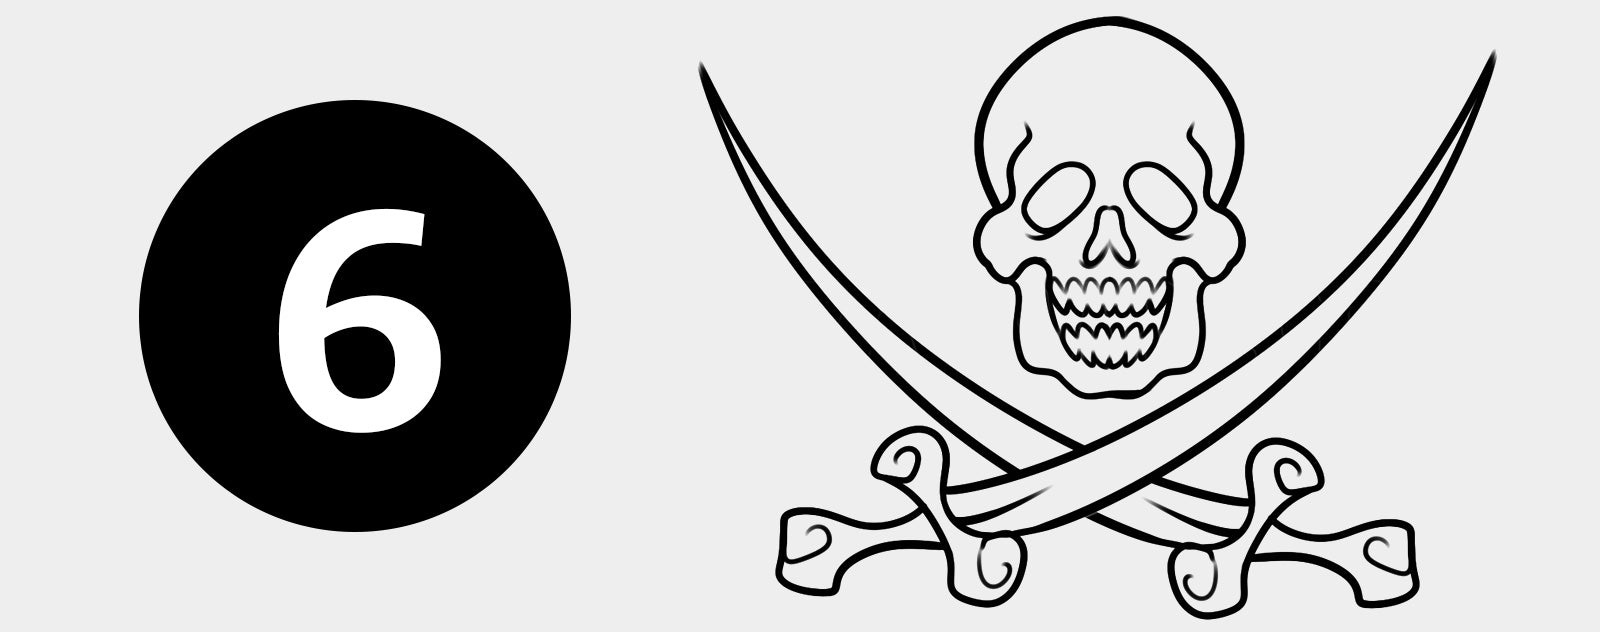 Dessin drapeau pirate